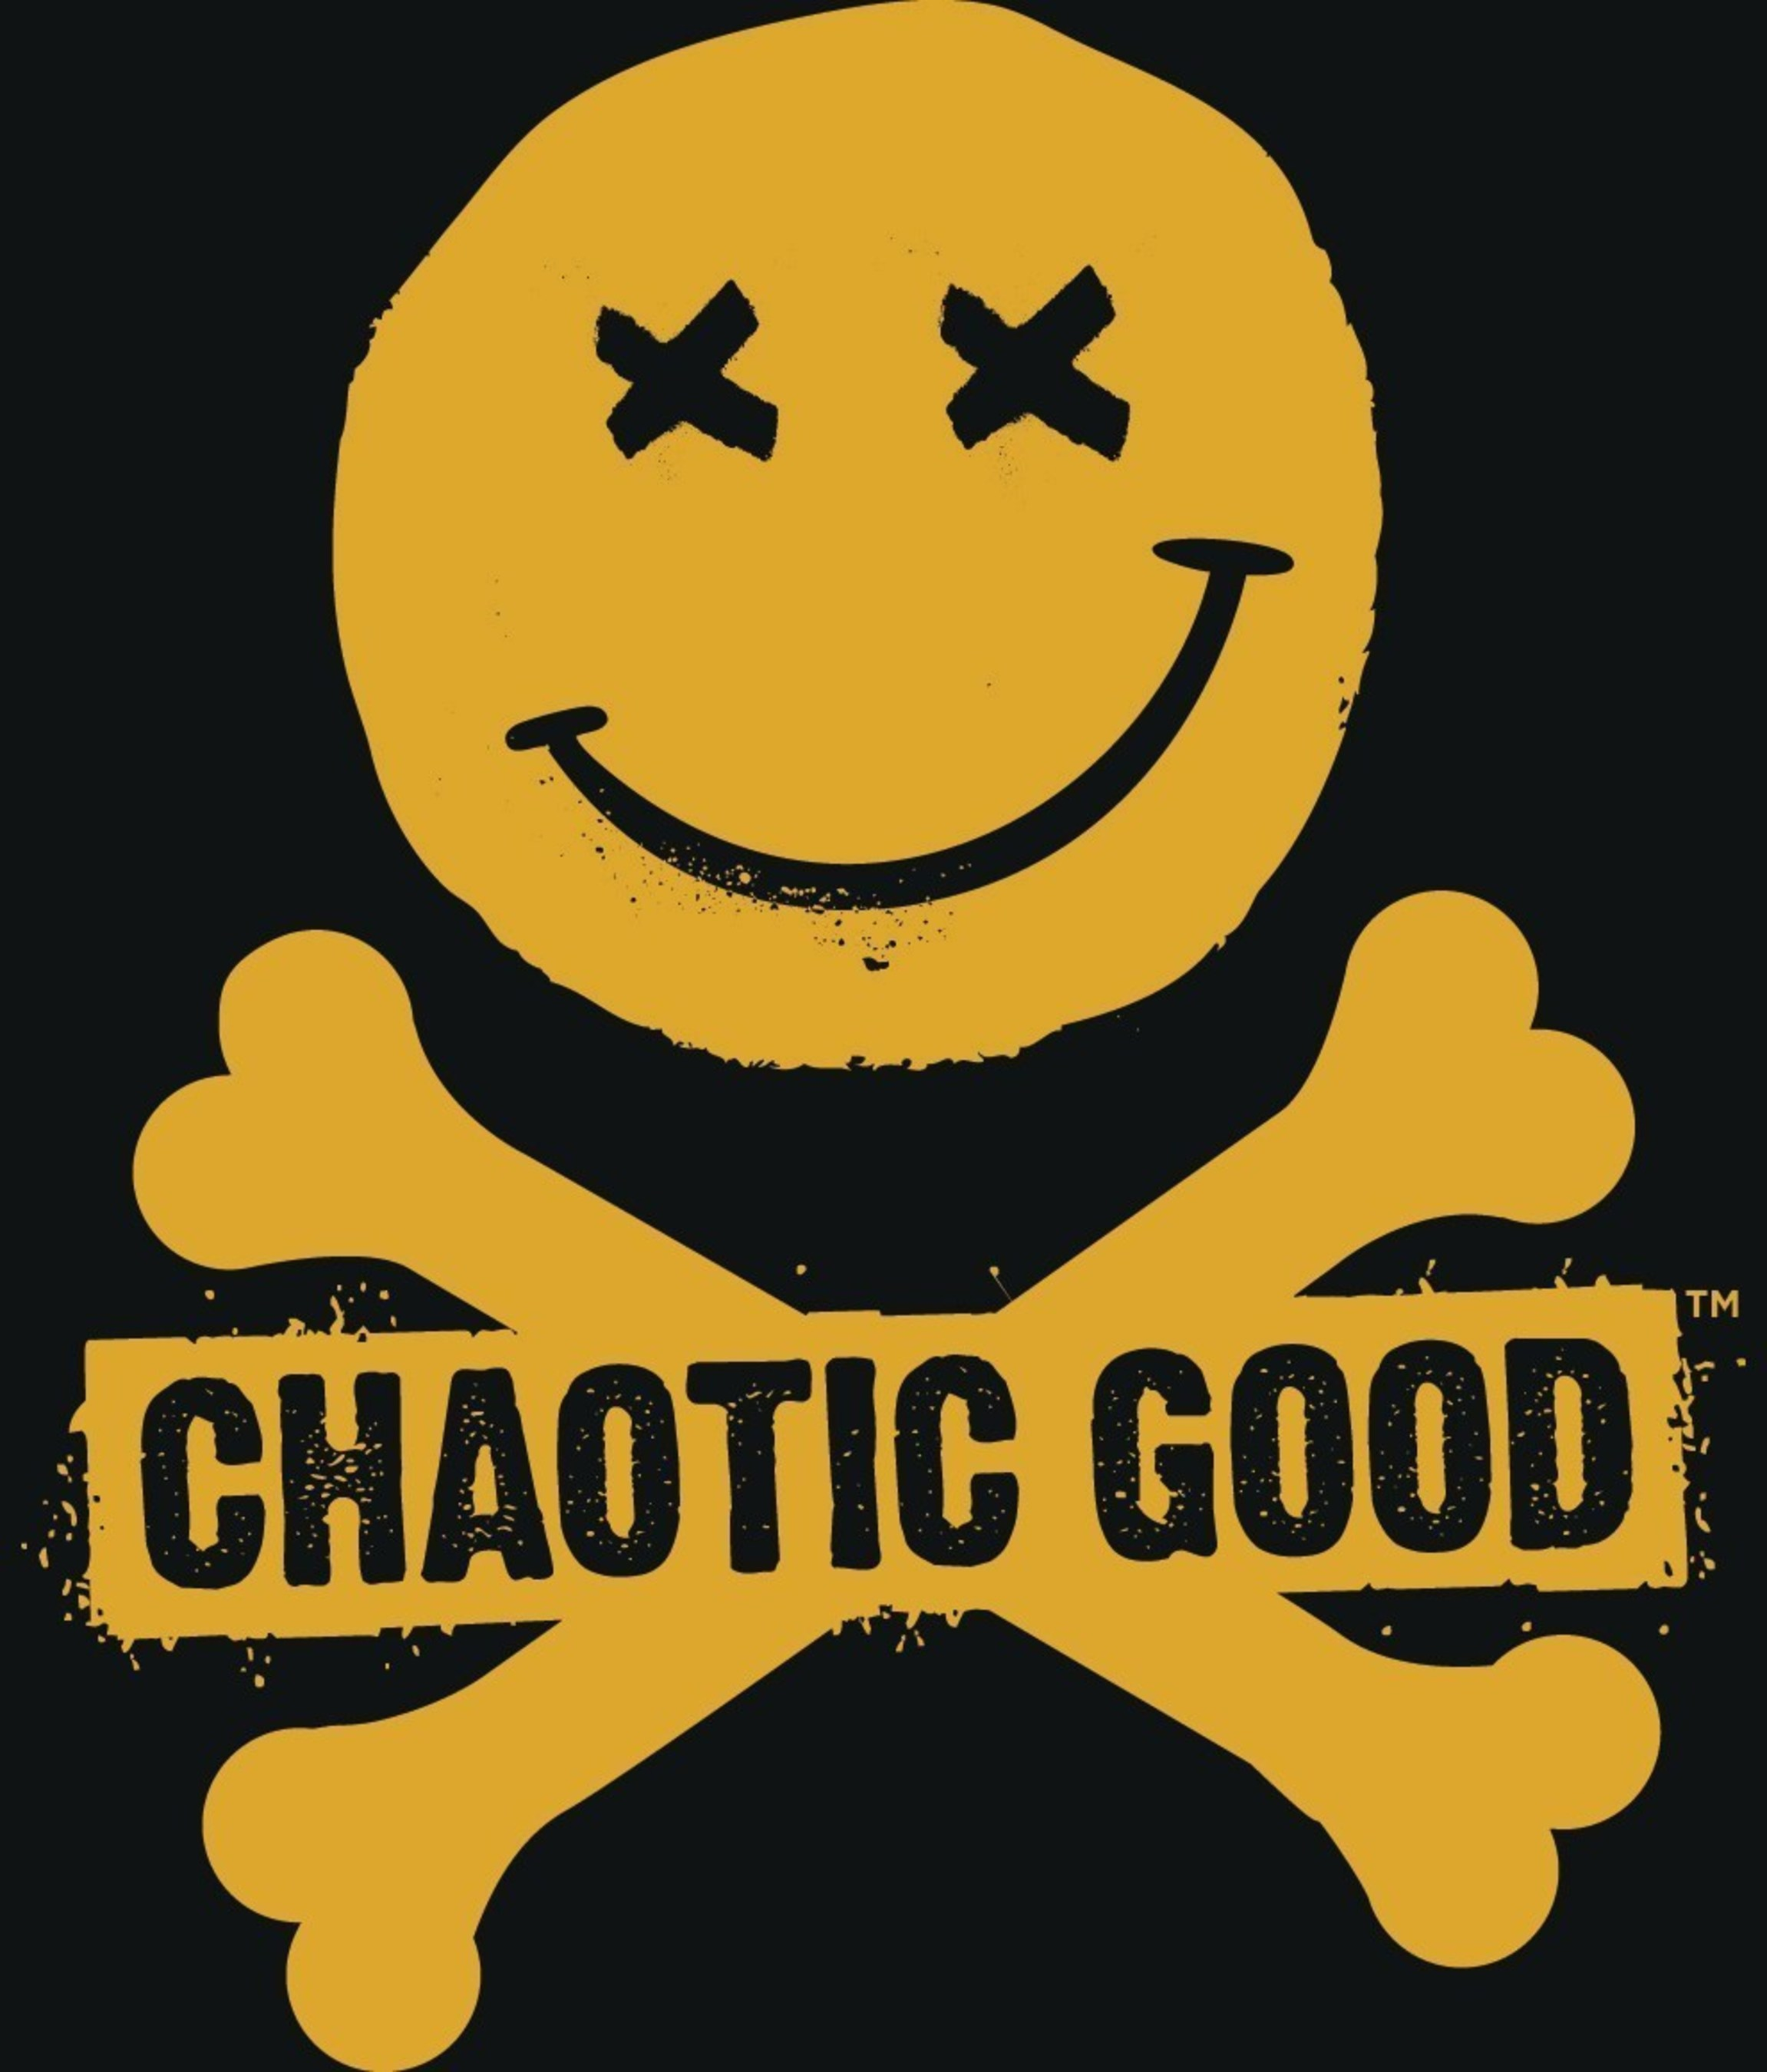 Hollywood-Based Chaotic Good Studios Makes Key New Hires Signaling Expansion; Company Develops Original Content For Multi-Platform Franchises Across Film, Television, Gam